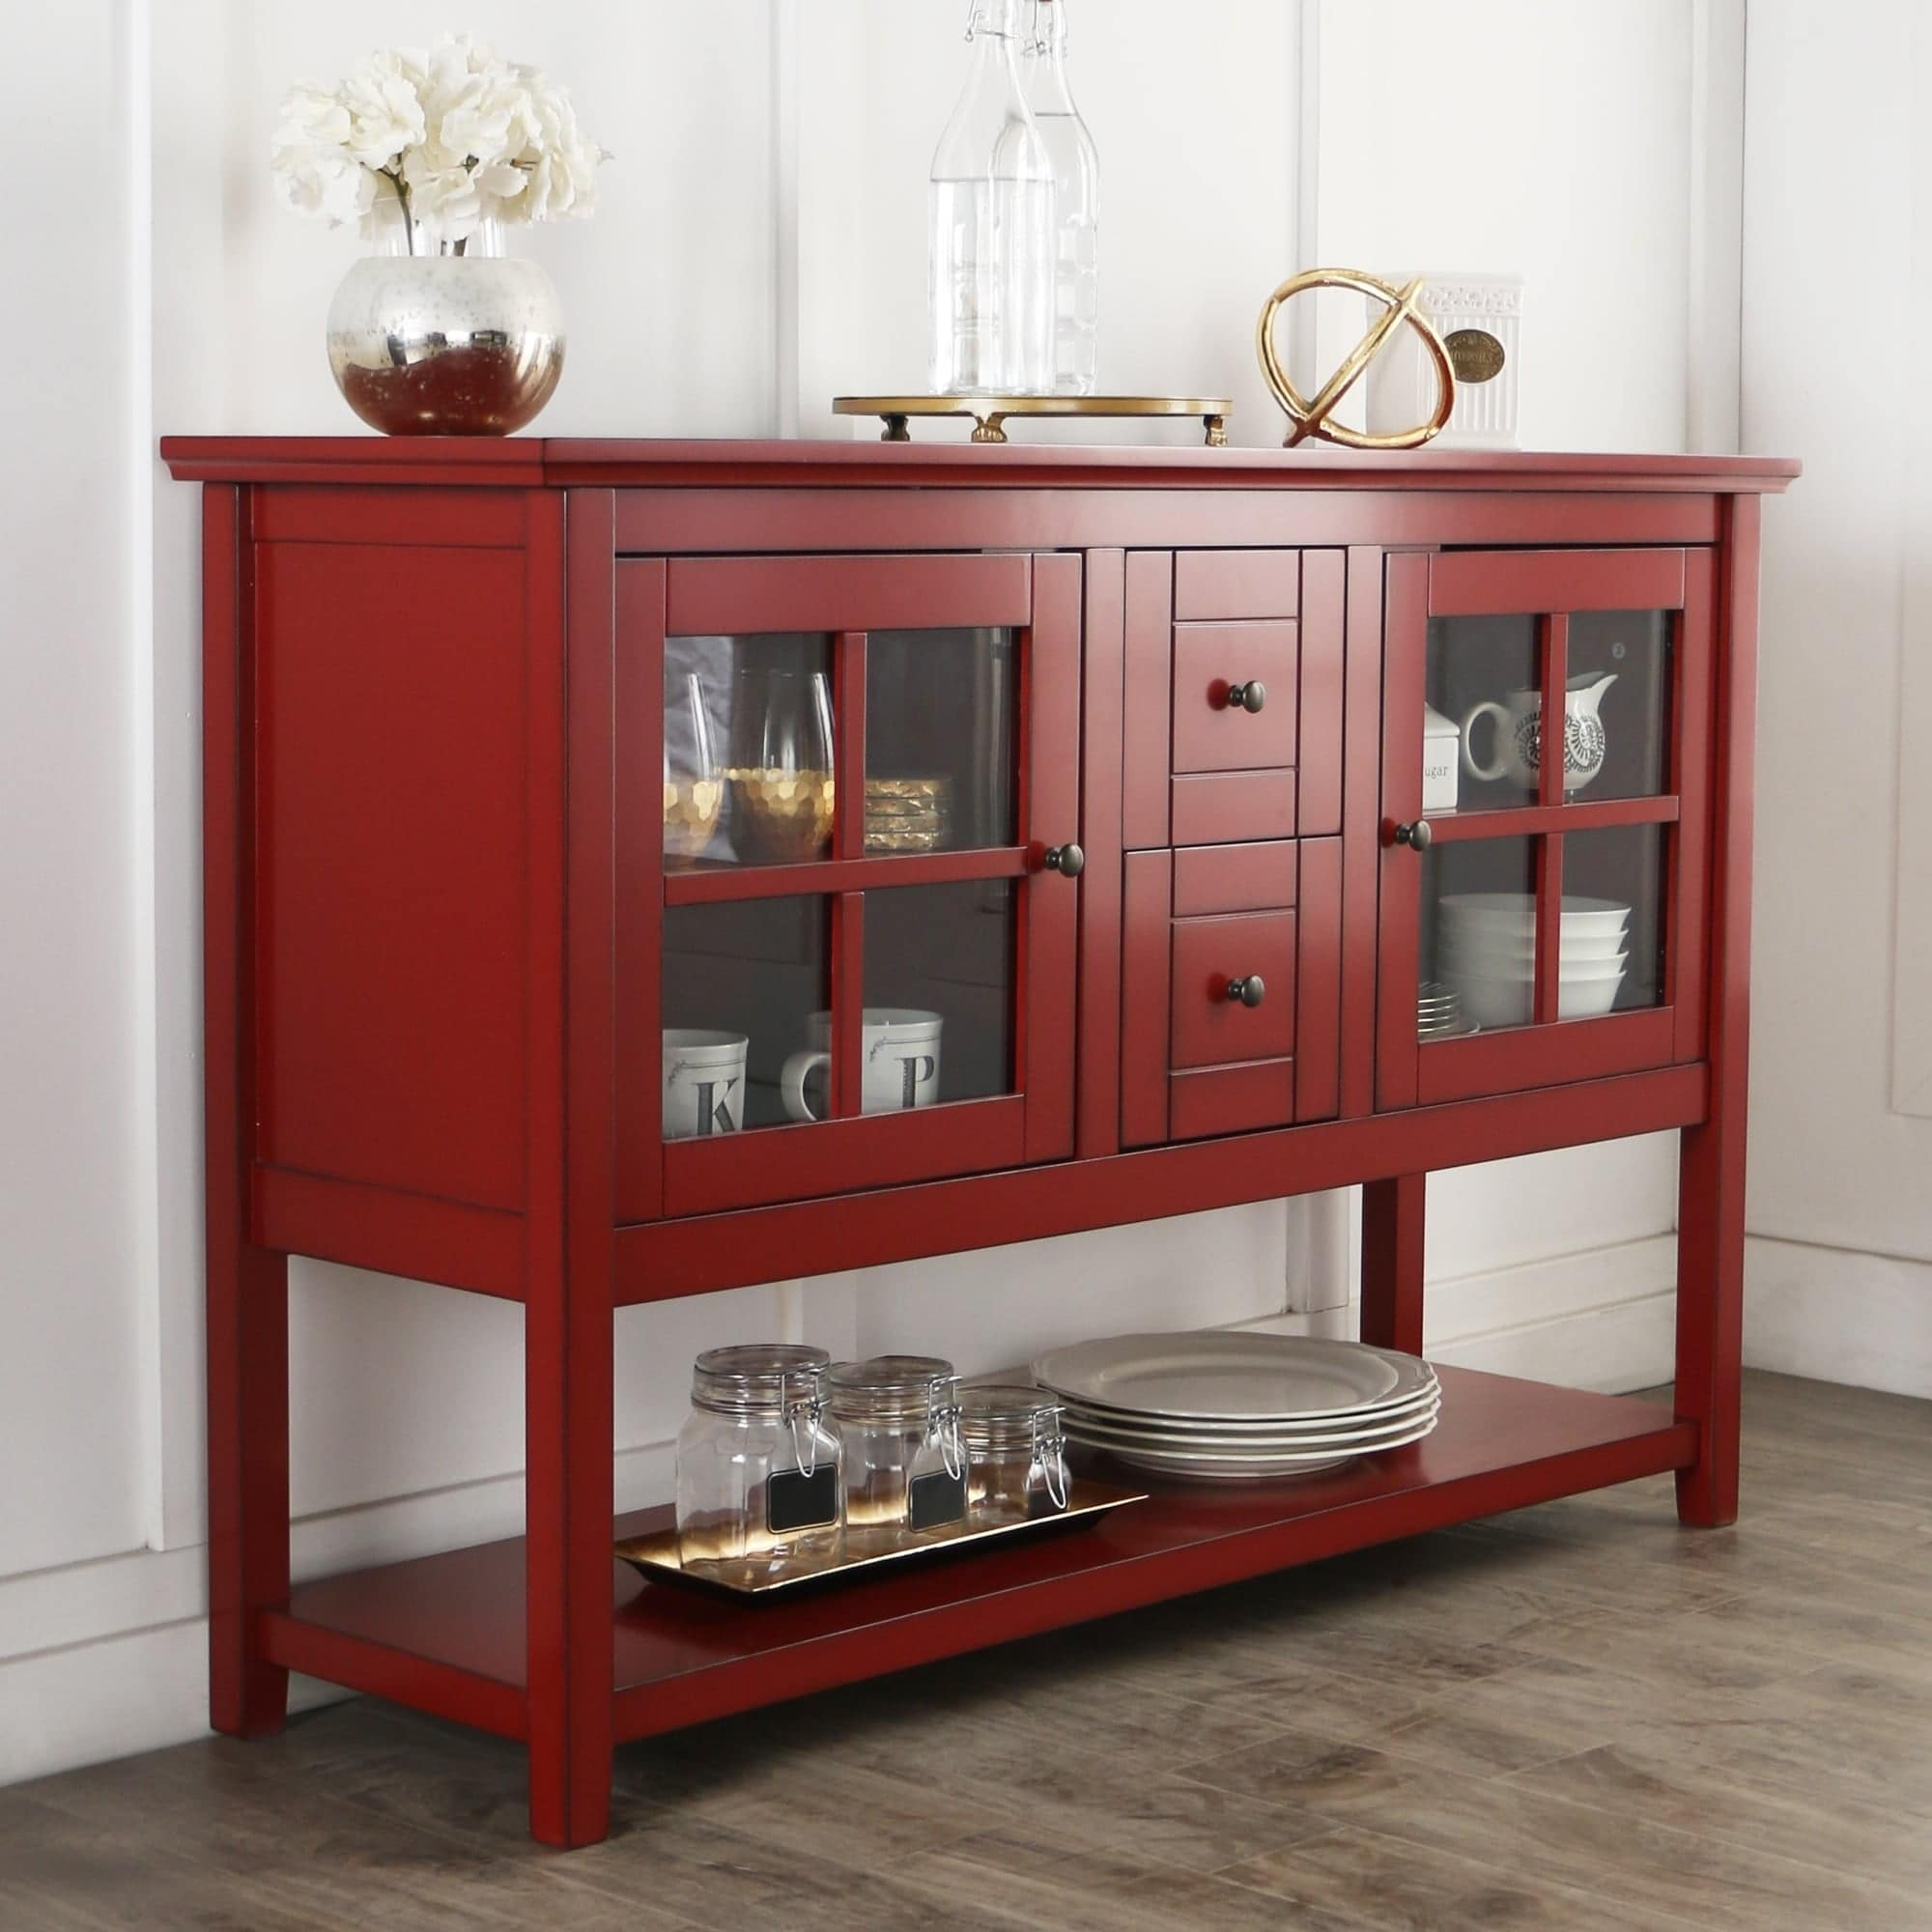 52-inch Antique Red Wood Console Table/Buffet